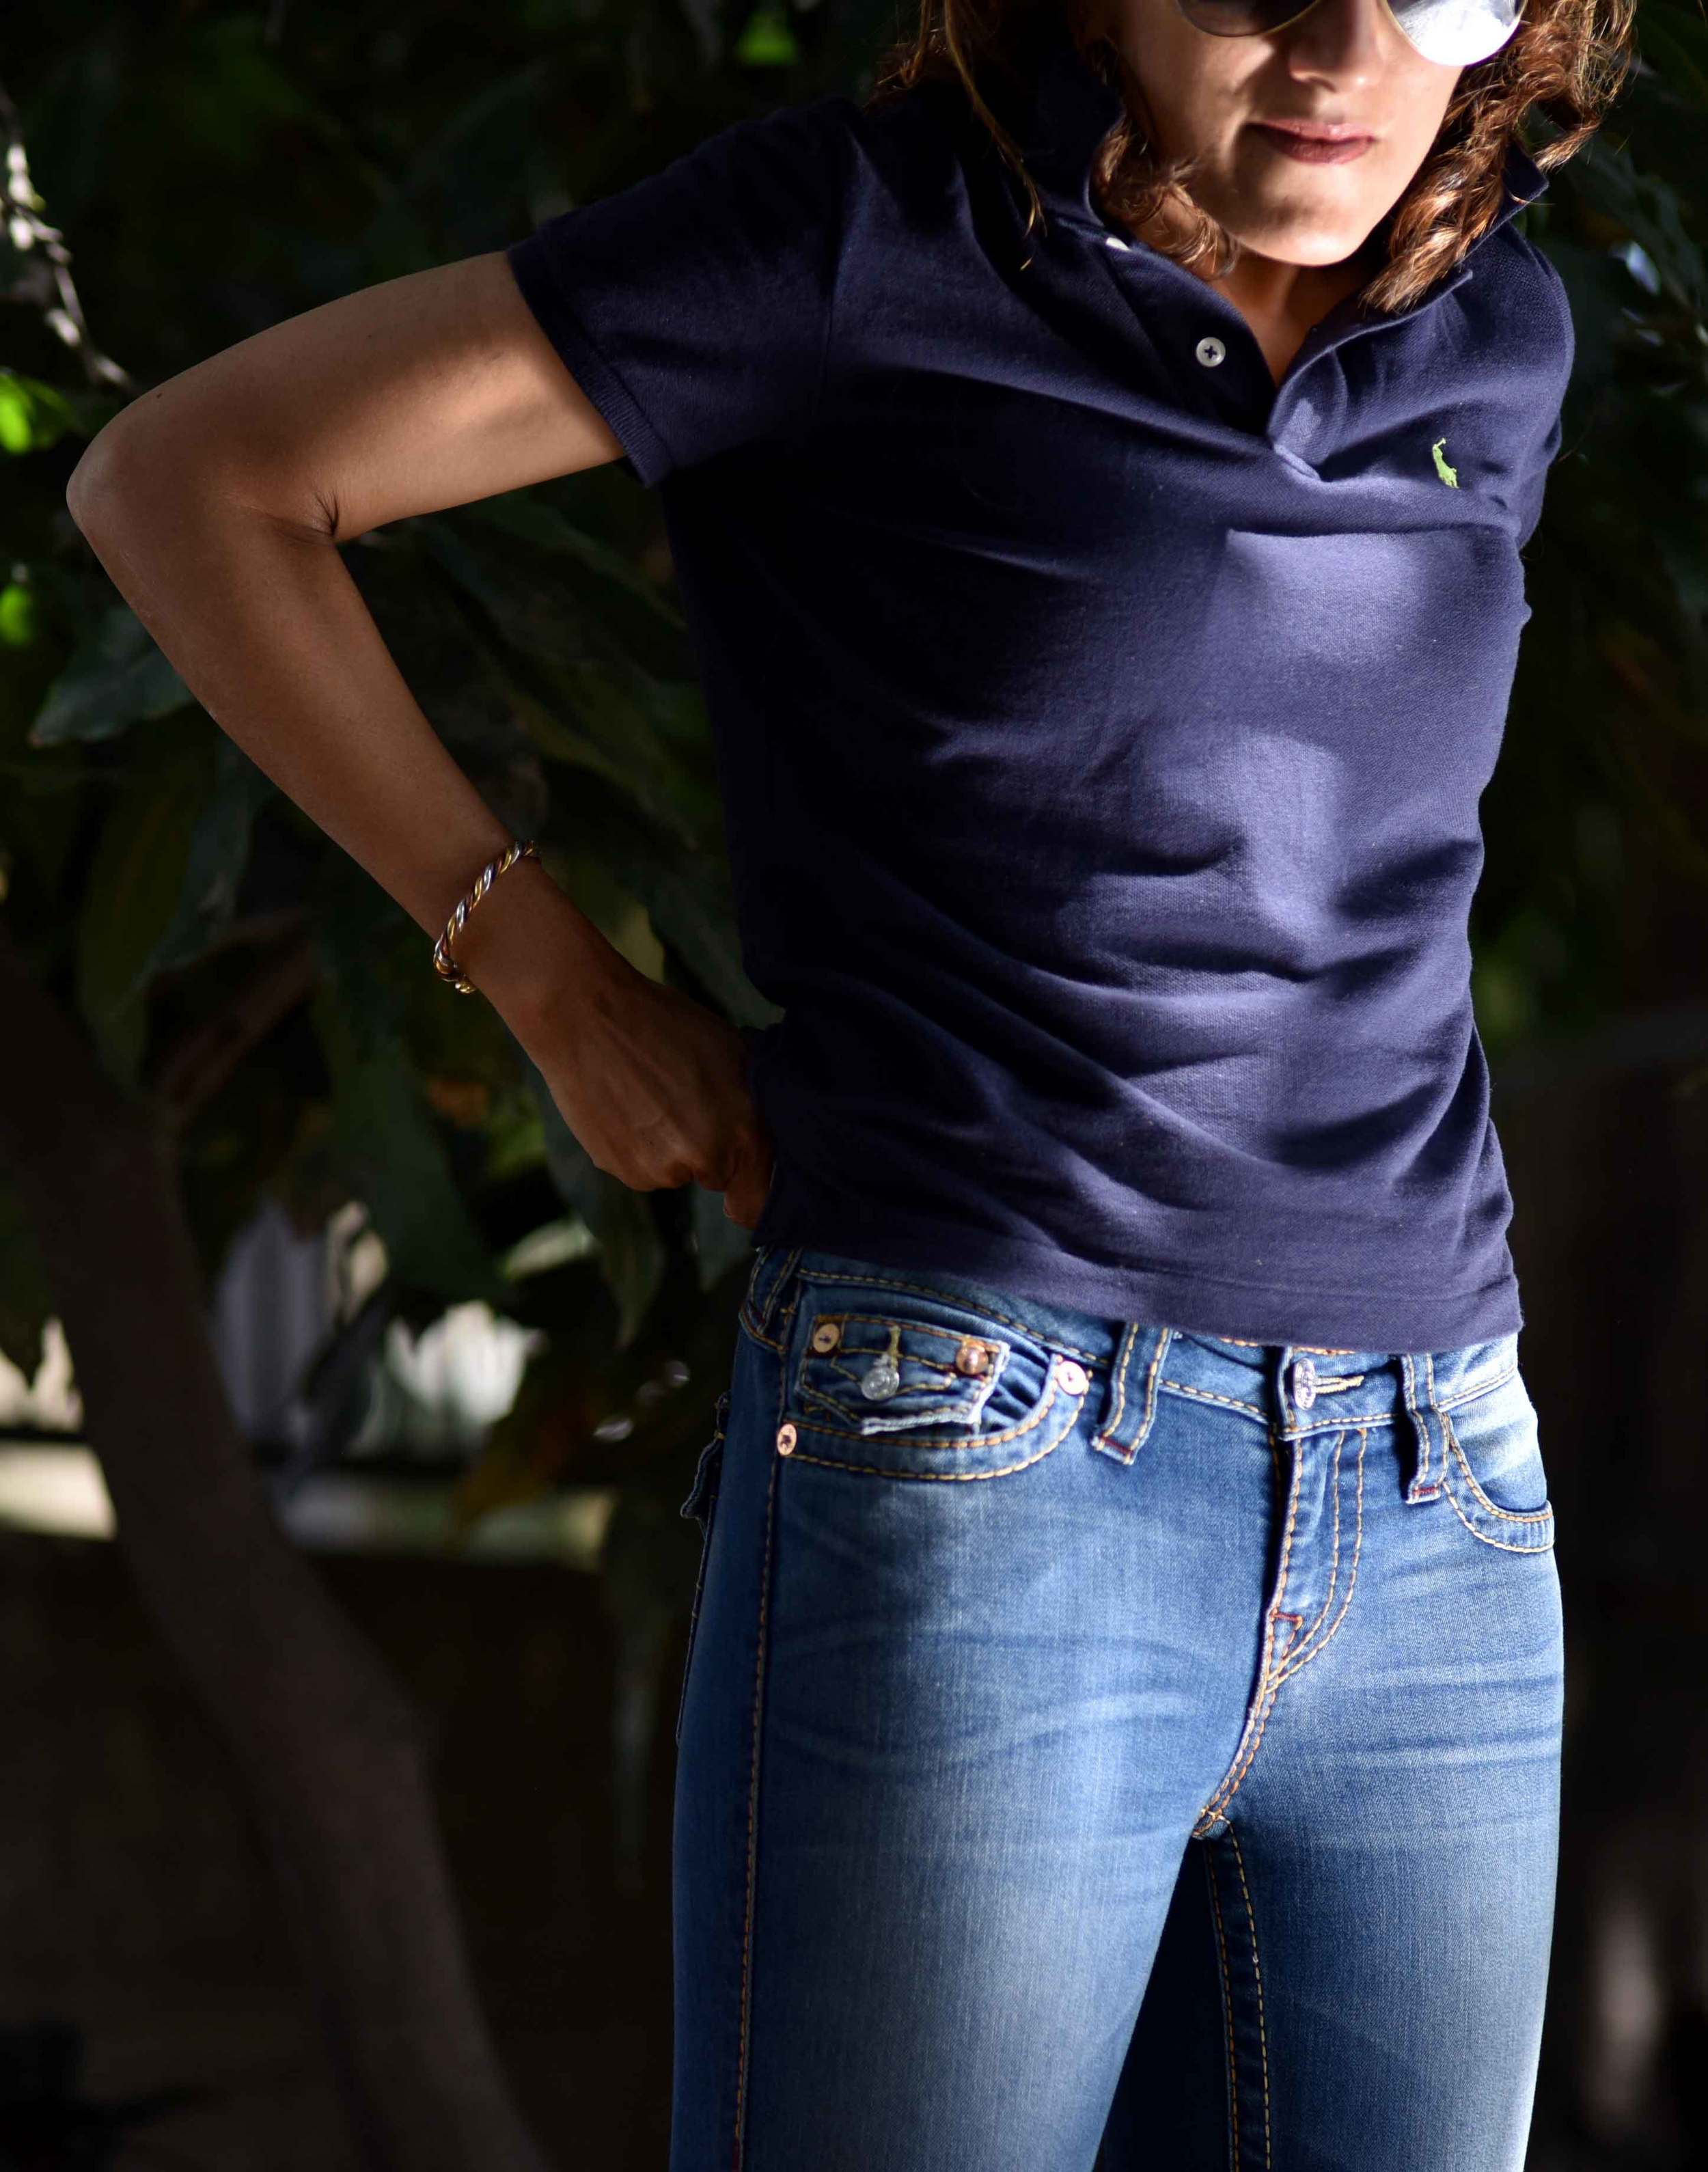 Ralph Lauren Skinny Polo, size M (I am a US size 2 on top) with True Religion Jeans. Image©gunjanvirk